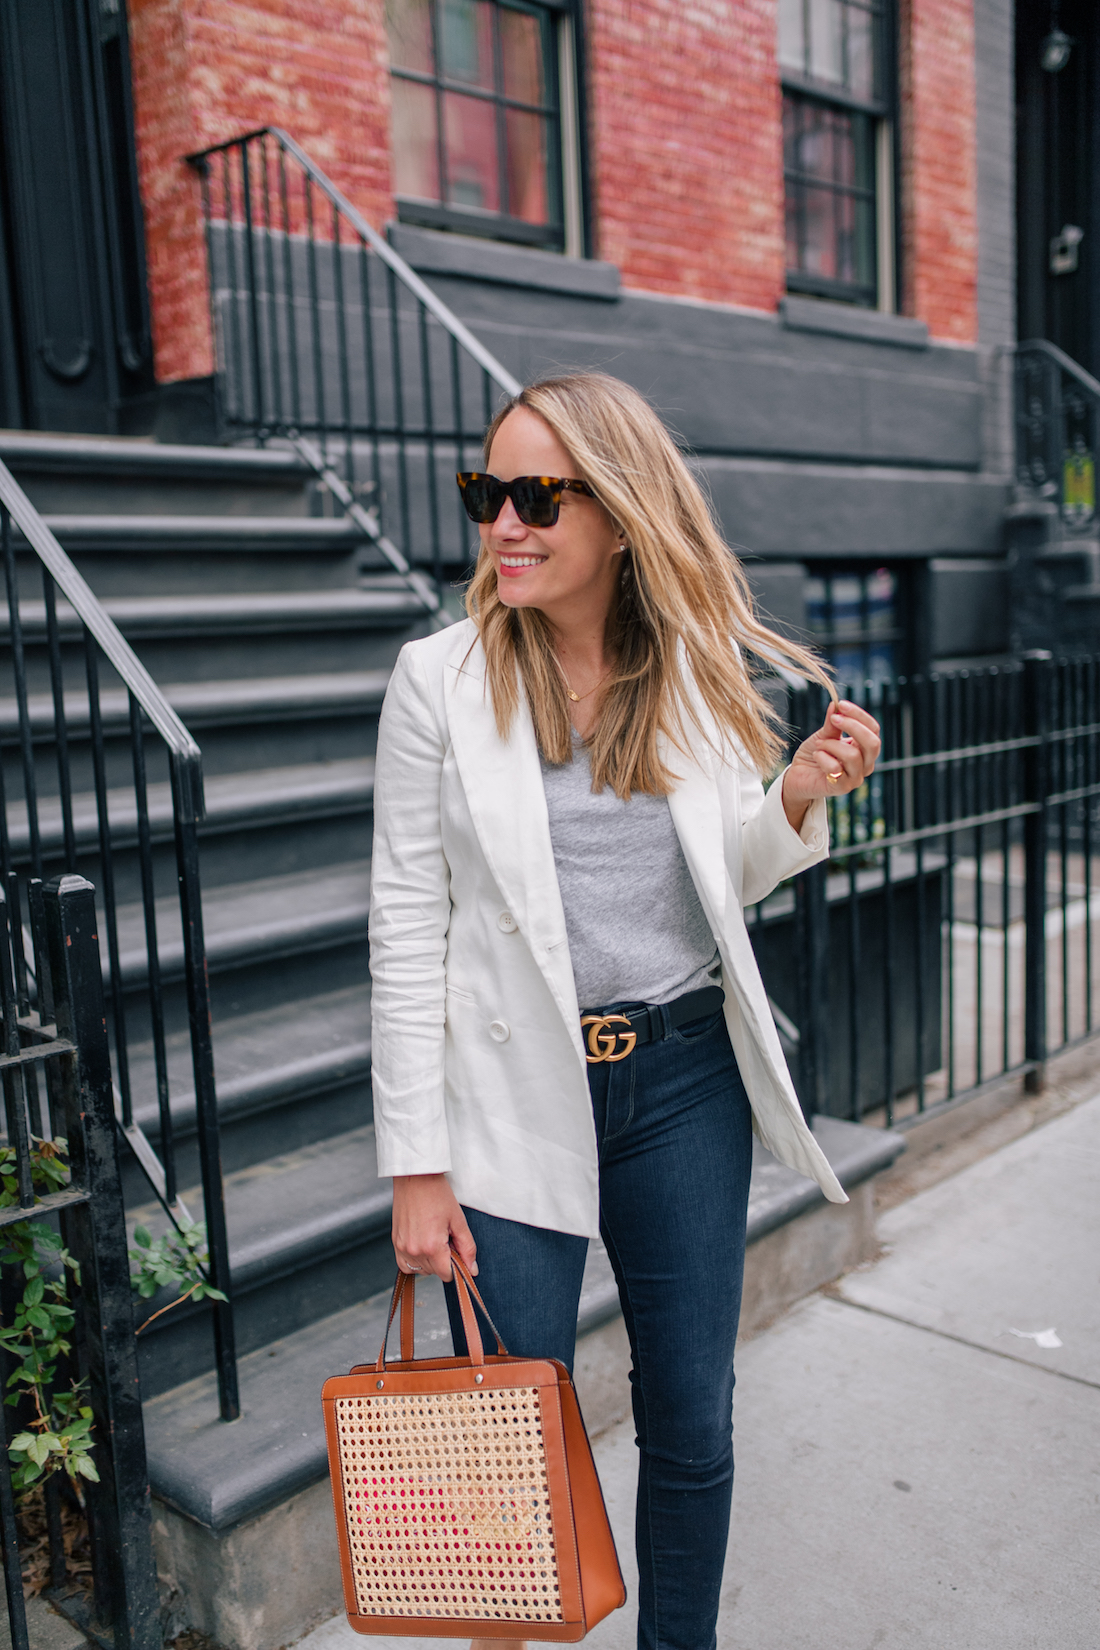 Grace Atwood Outfit Details: White Blazer For Spring // Madewell Tee // Paige Jeans // Gucci Belt //  Palmgrens Bag // Celine Sunglasses // Estee Lalonde x Daisy Jewellery Necklace